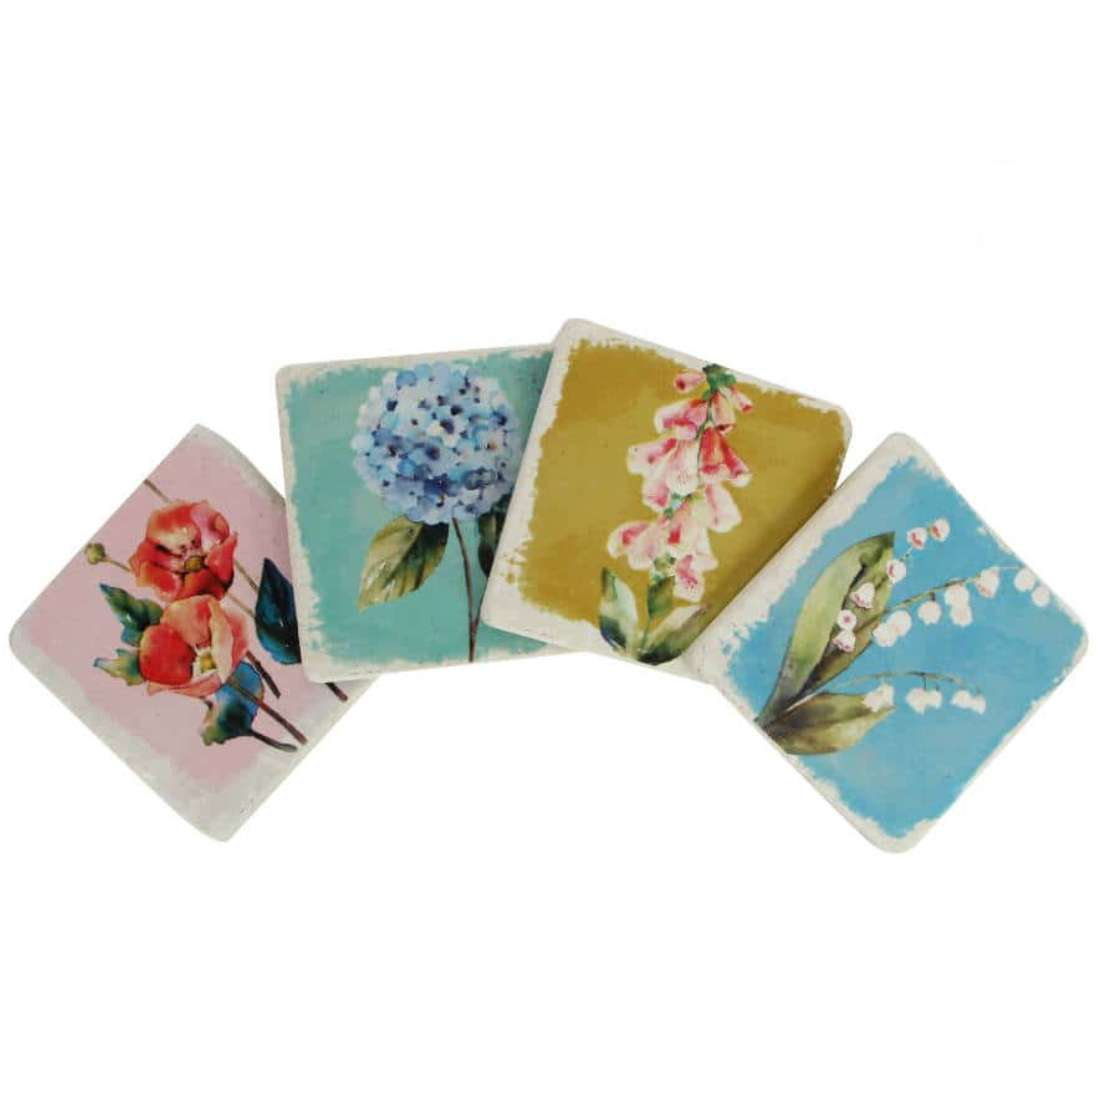 Pretty floral coasters by Gisella Graham